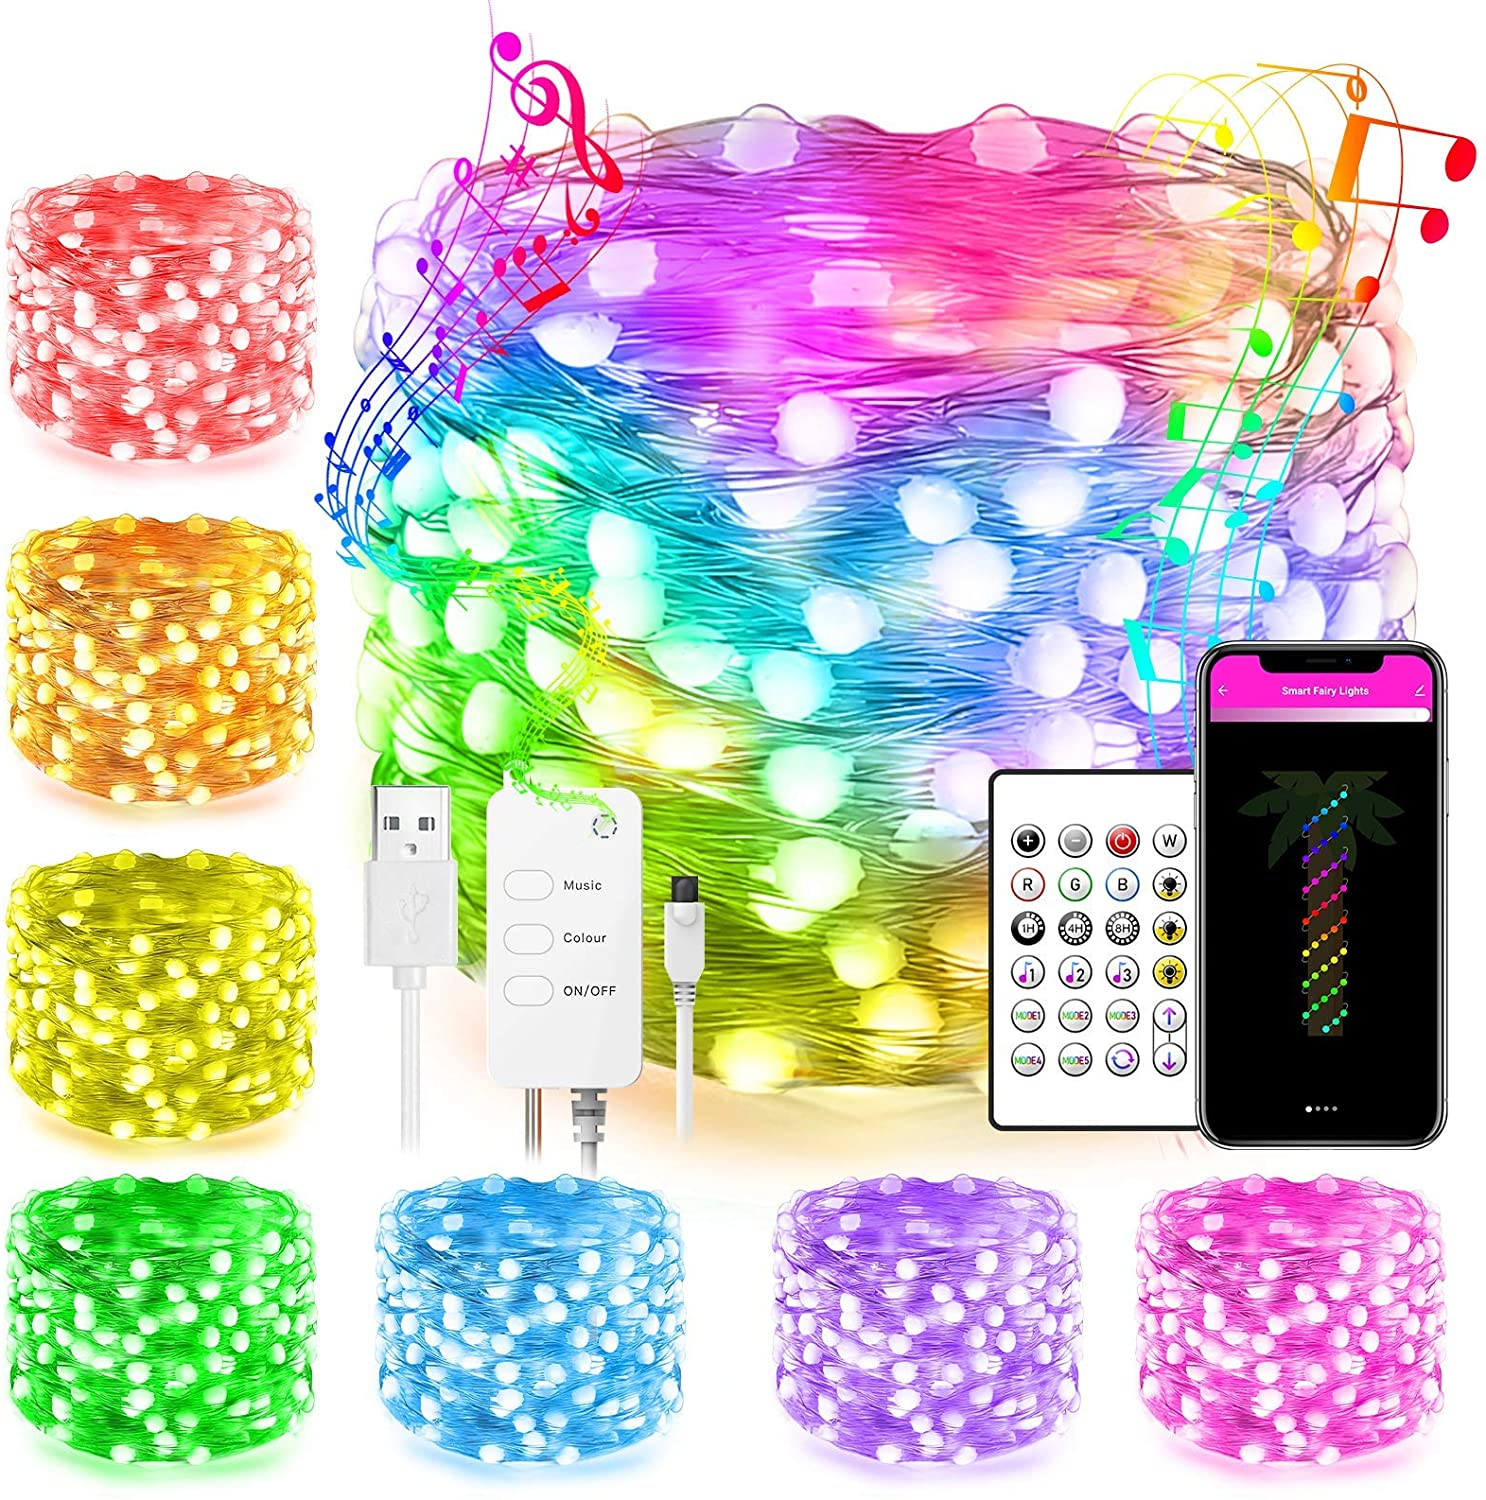 Smart WiFi Led Fairy String Lights Work with Alexa Google Home Remote App Control Multi Modes Color Changing Music Sync